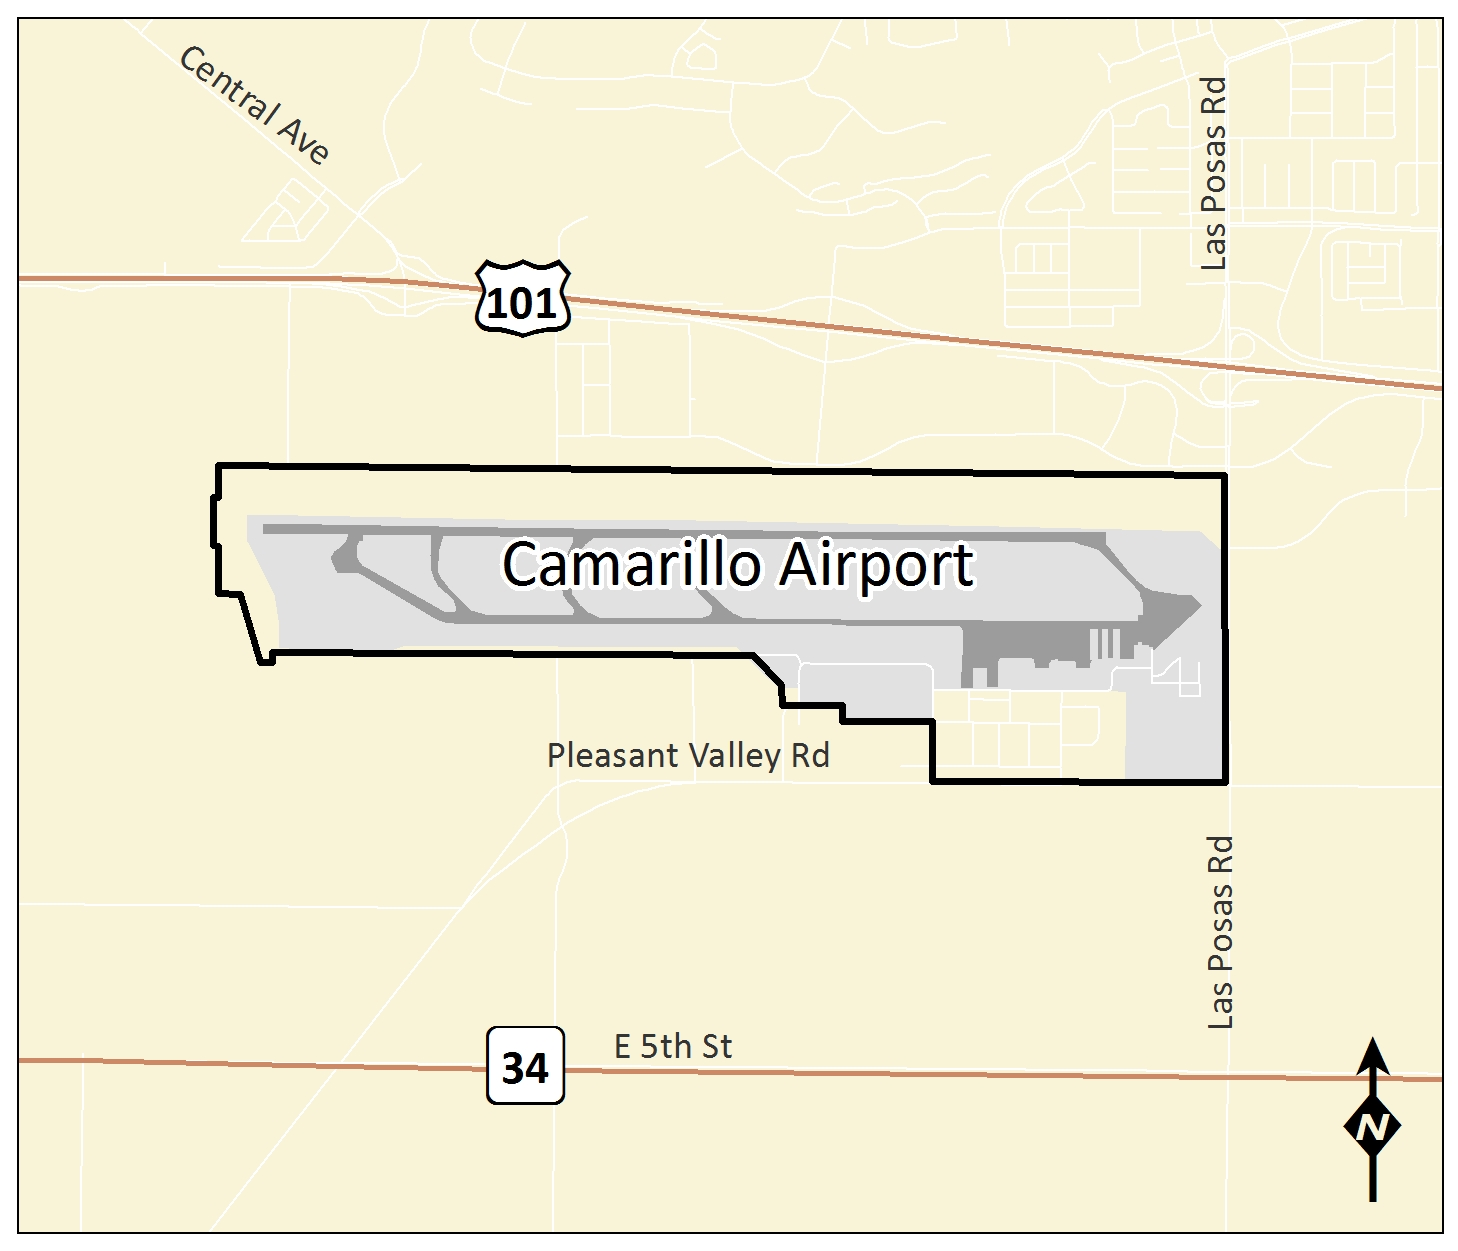 Camarillo Airport on